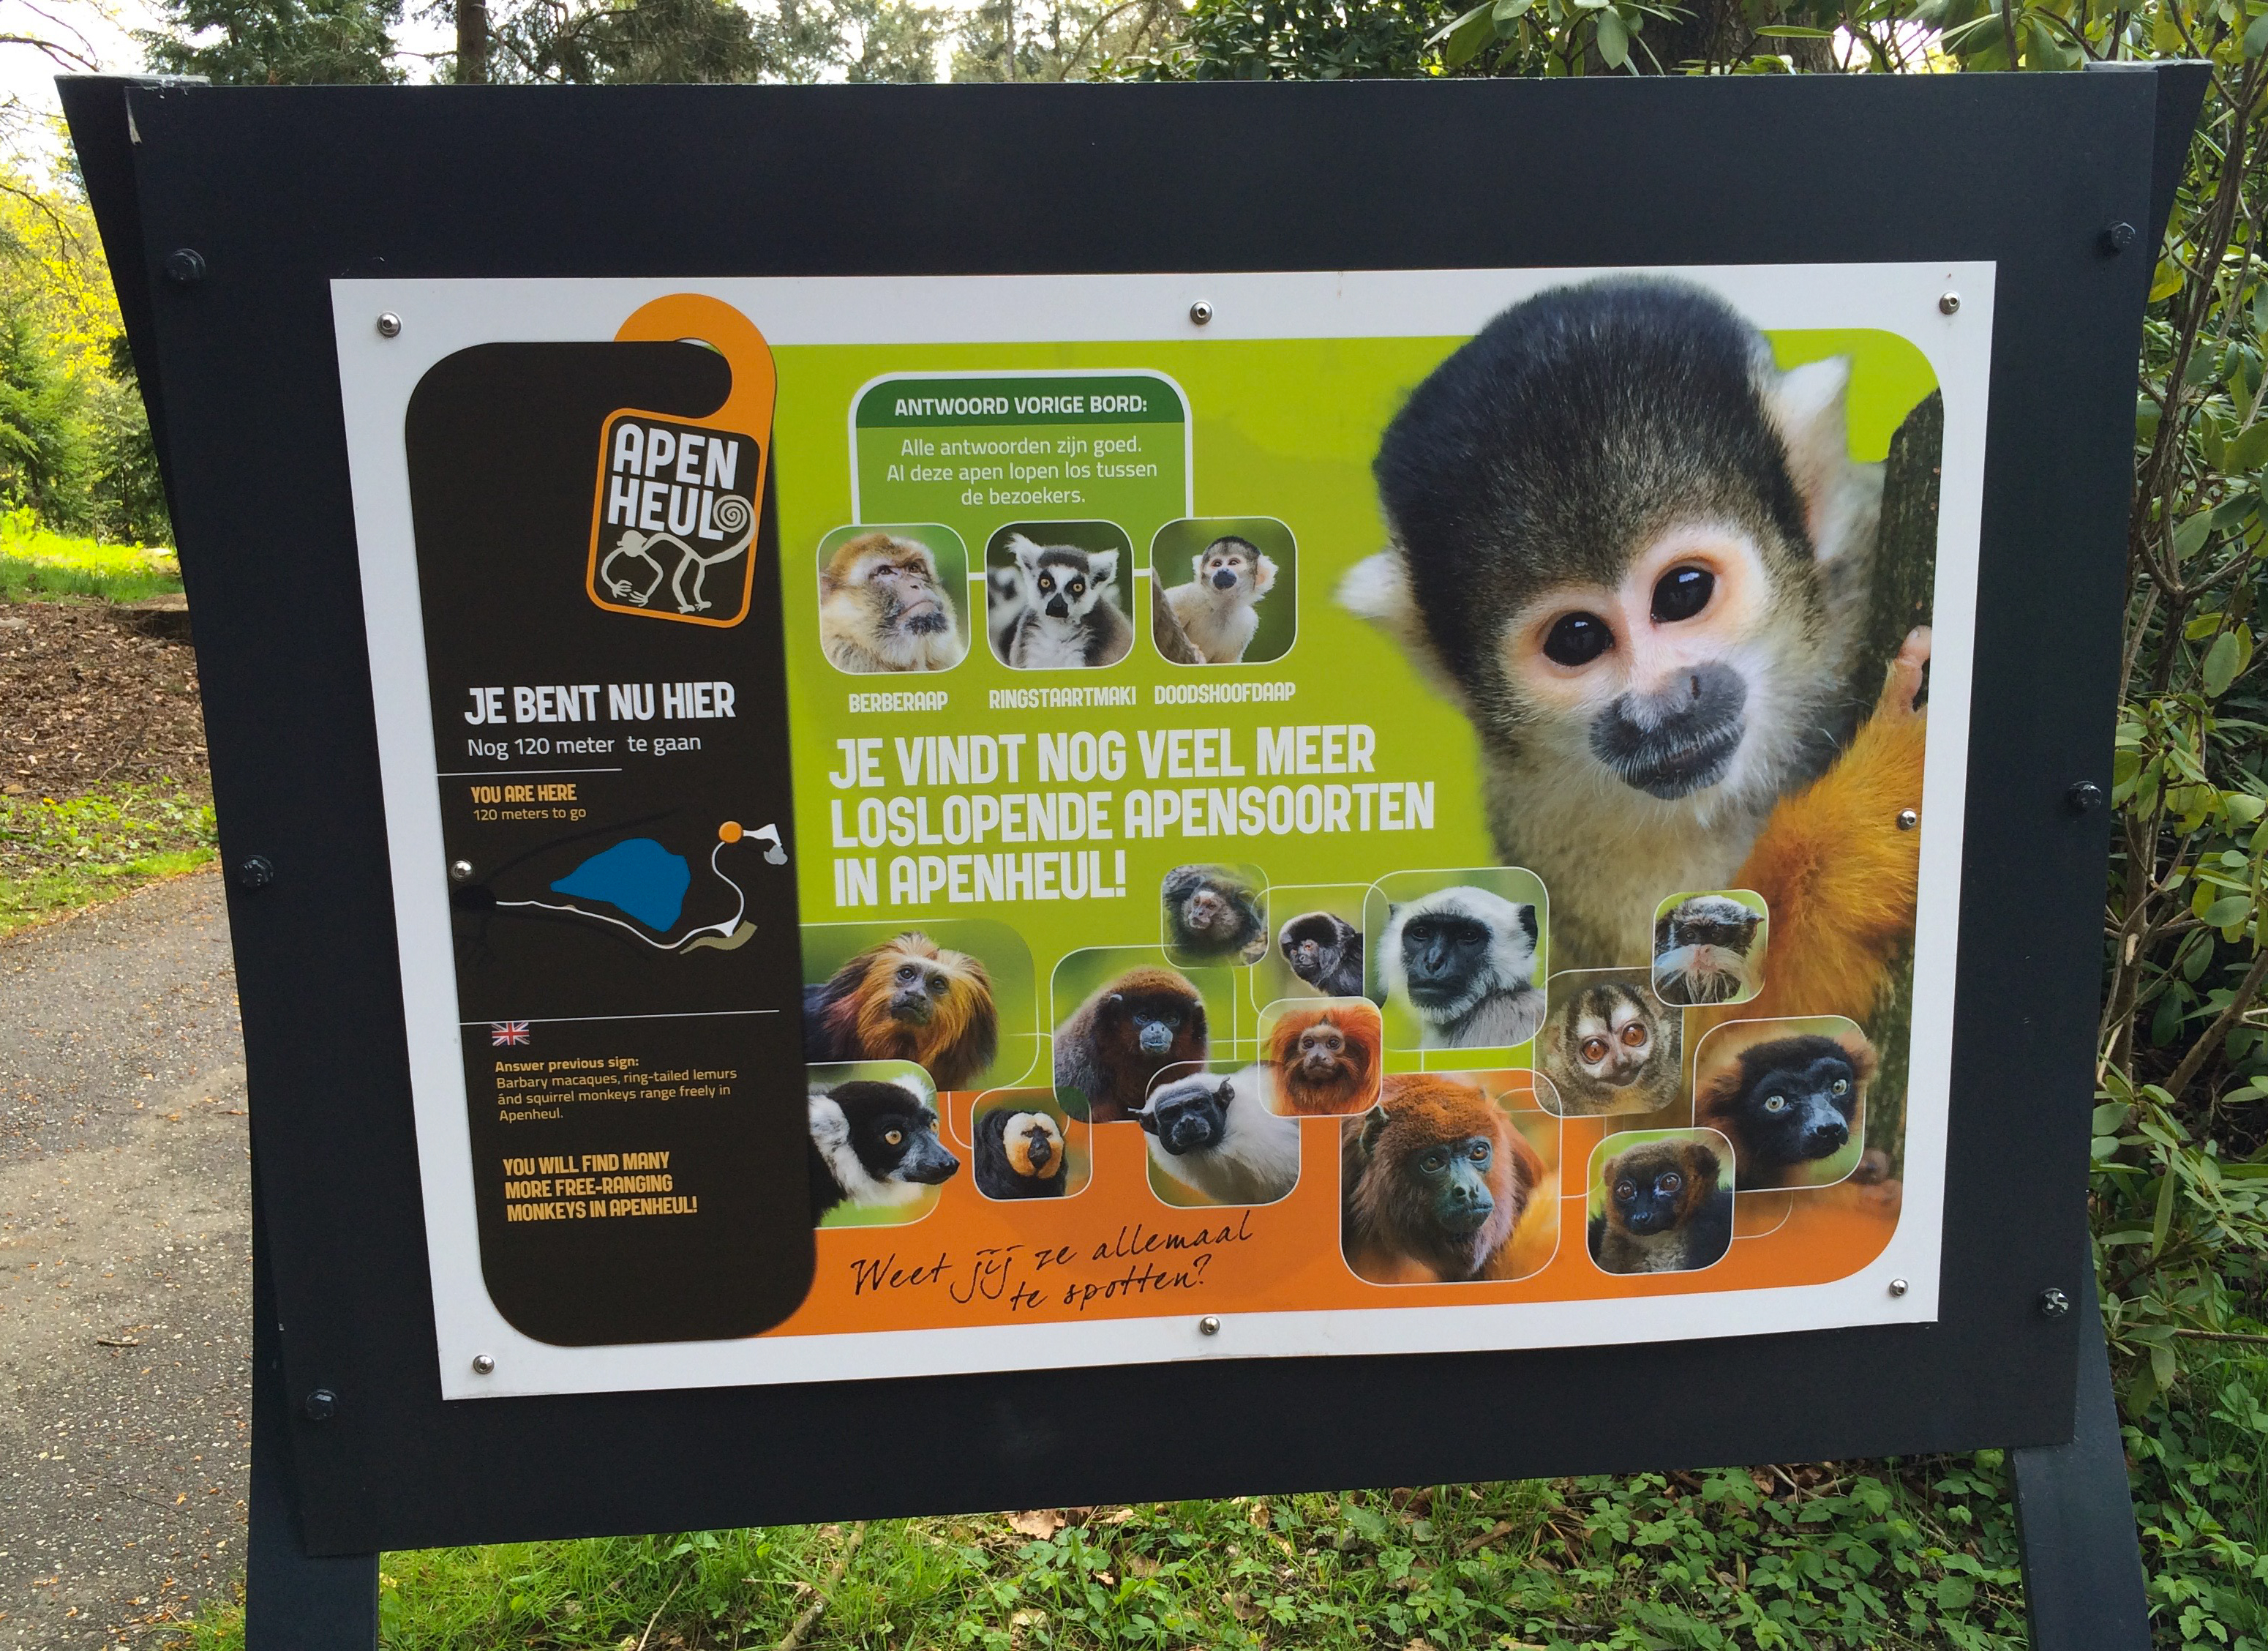 A Visit to the Apenheul Primate Park in the Netherlands – Lemur  Conservation Network